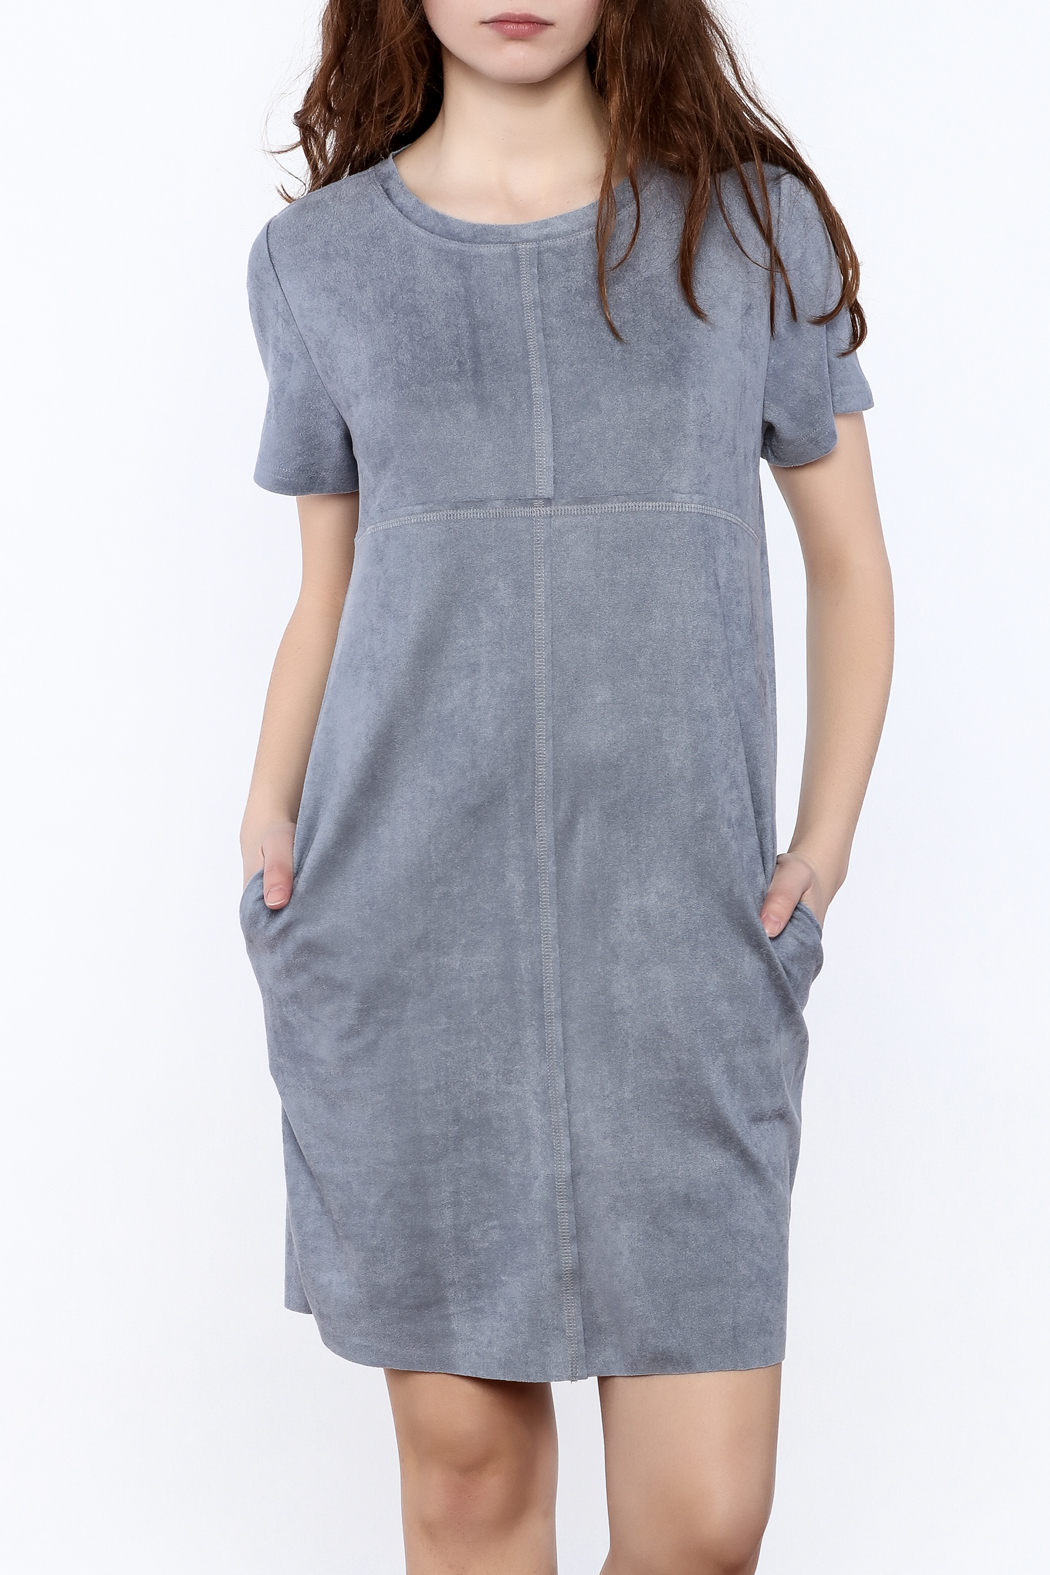 cc7b42a07e8 JOH Faux Suede Shift Dress from Wyckoff by Bedford Basket — Shoptiques